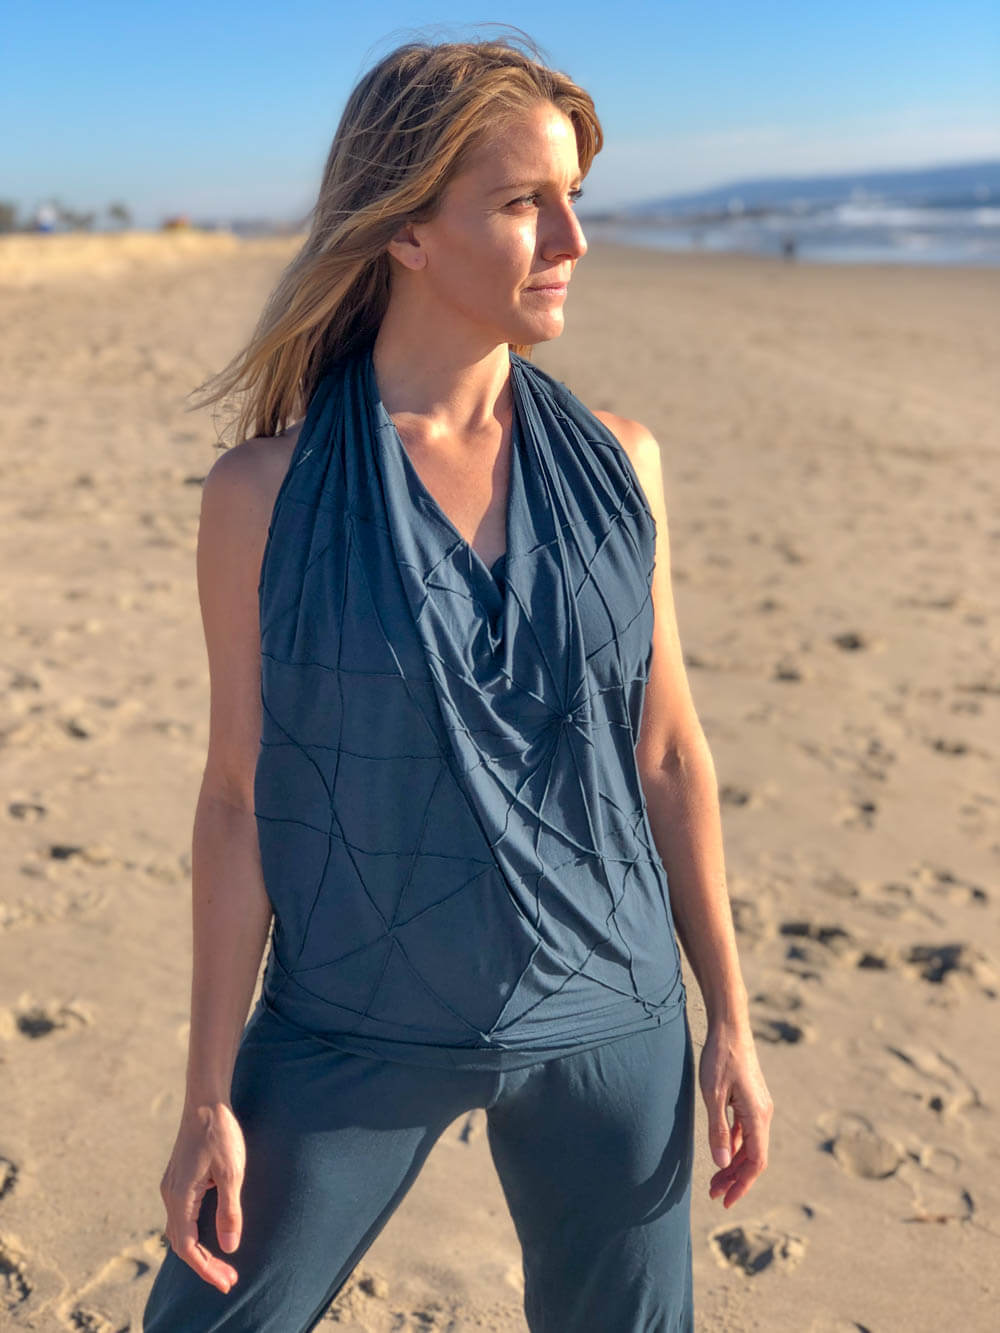 caraucci women's plant based rayon jersey teal blue textured poncho can be worn multiple ways; show as a halter top #color_teal